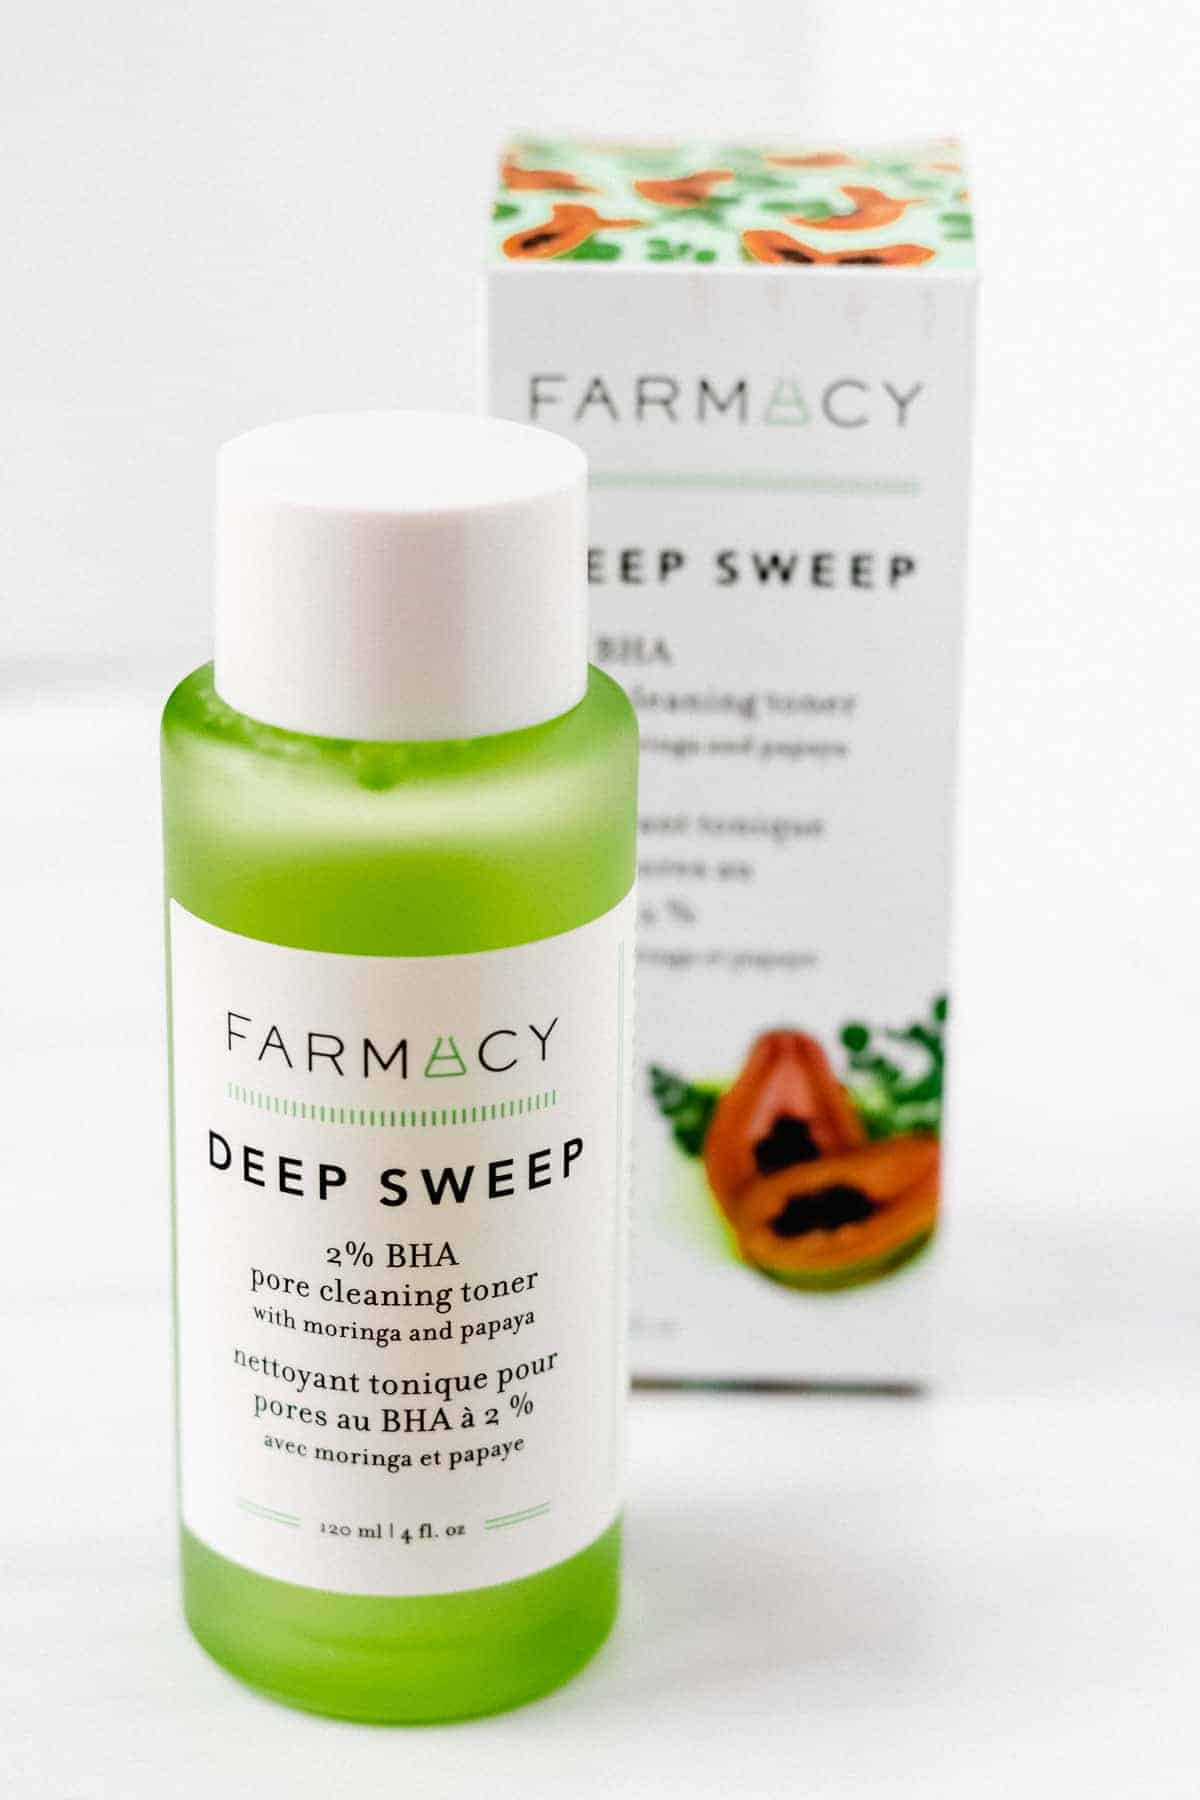 Farmacy Deep Sweep 2% BHA Pore Cleaning Toner bottle and box on a white backdrop